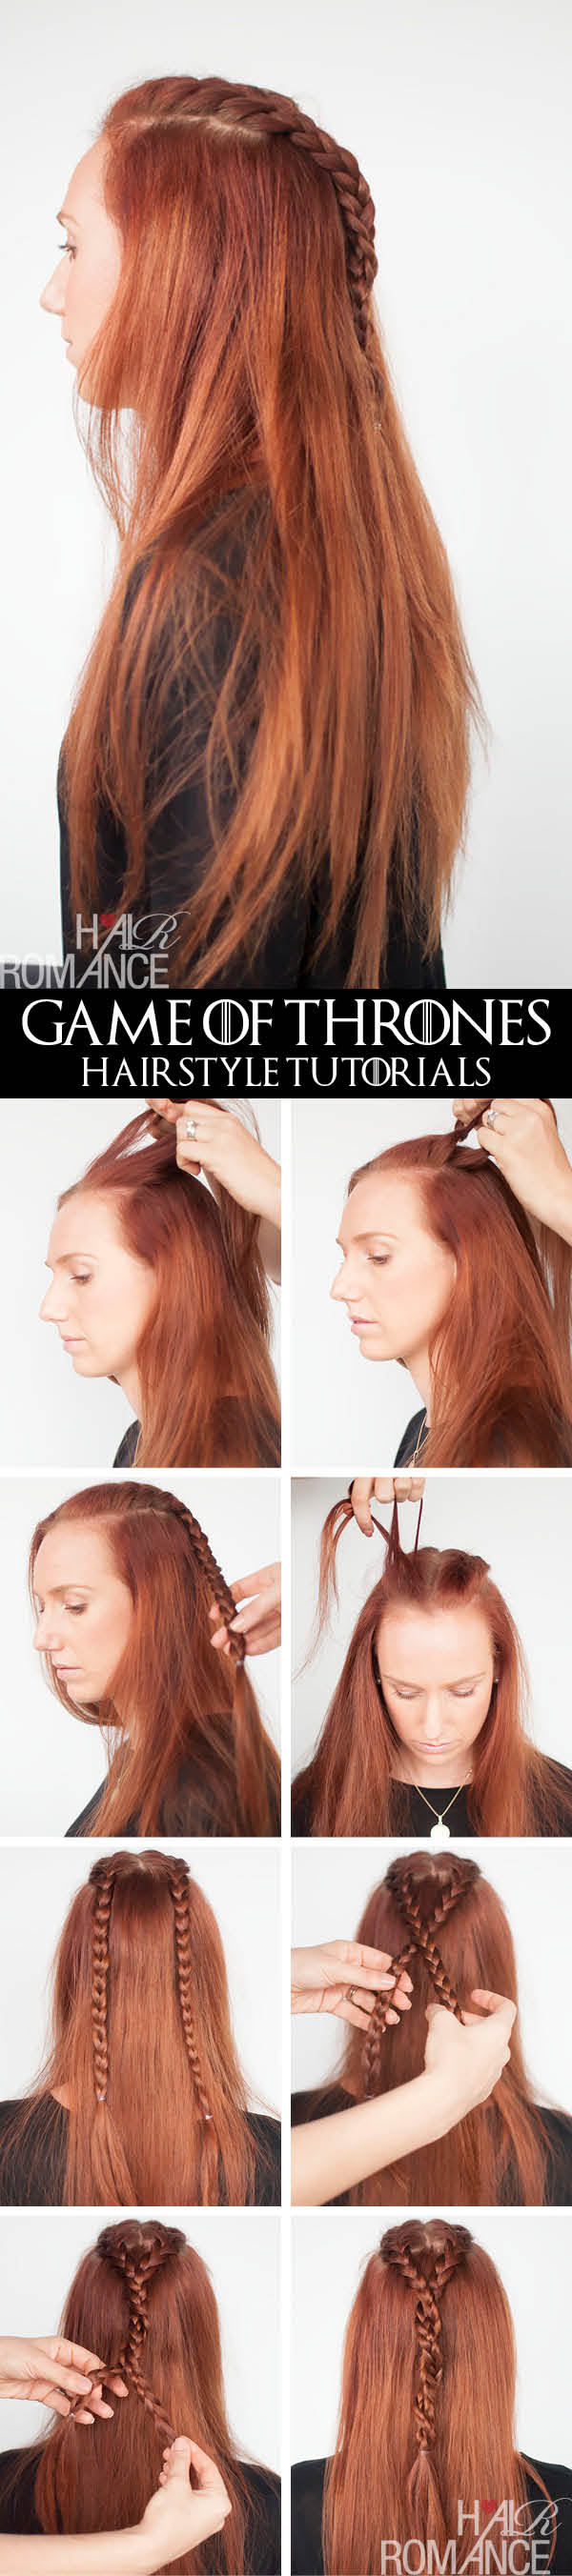 Hair Romance - Game of Thrones - hairstyle tutorials - Sansa Stark braids